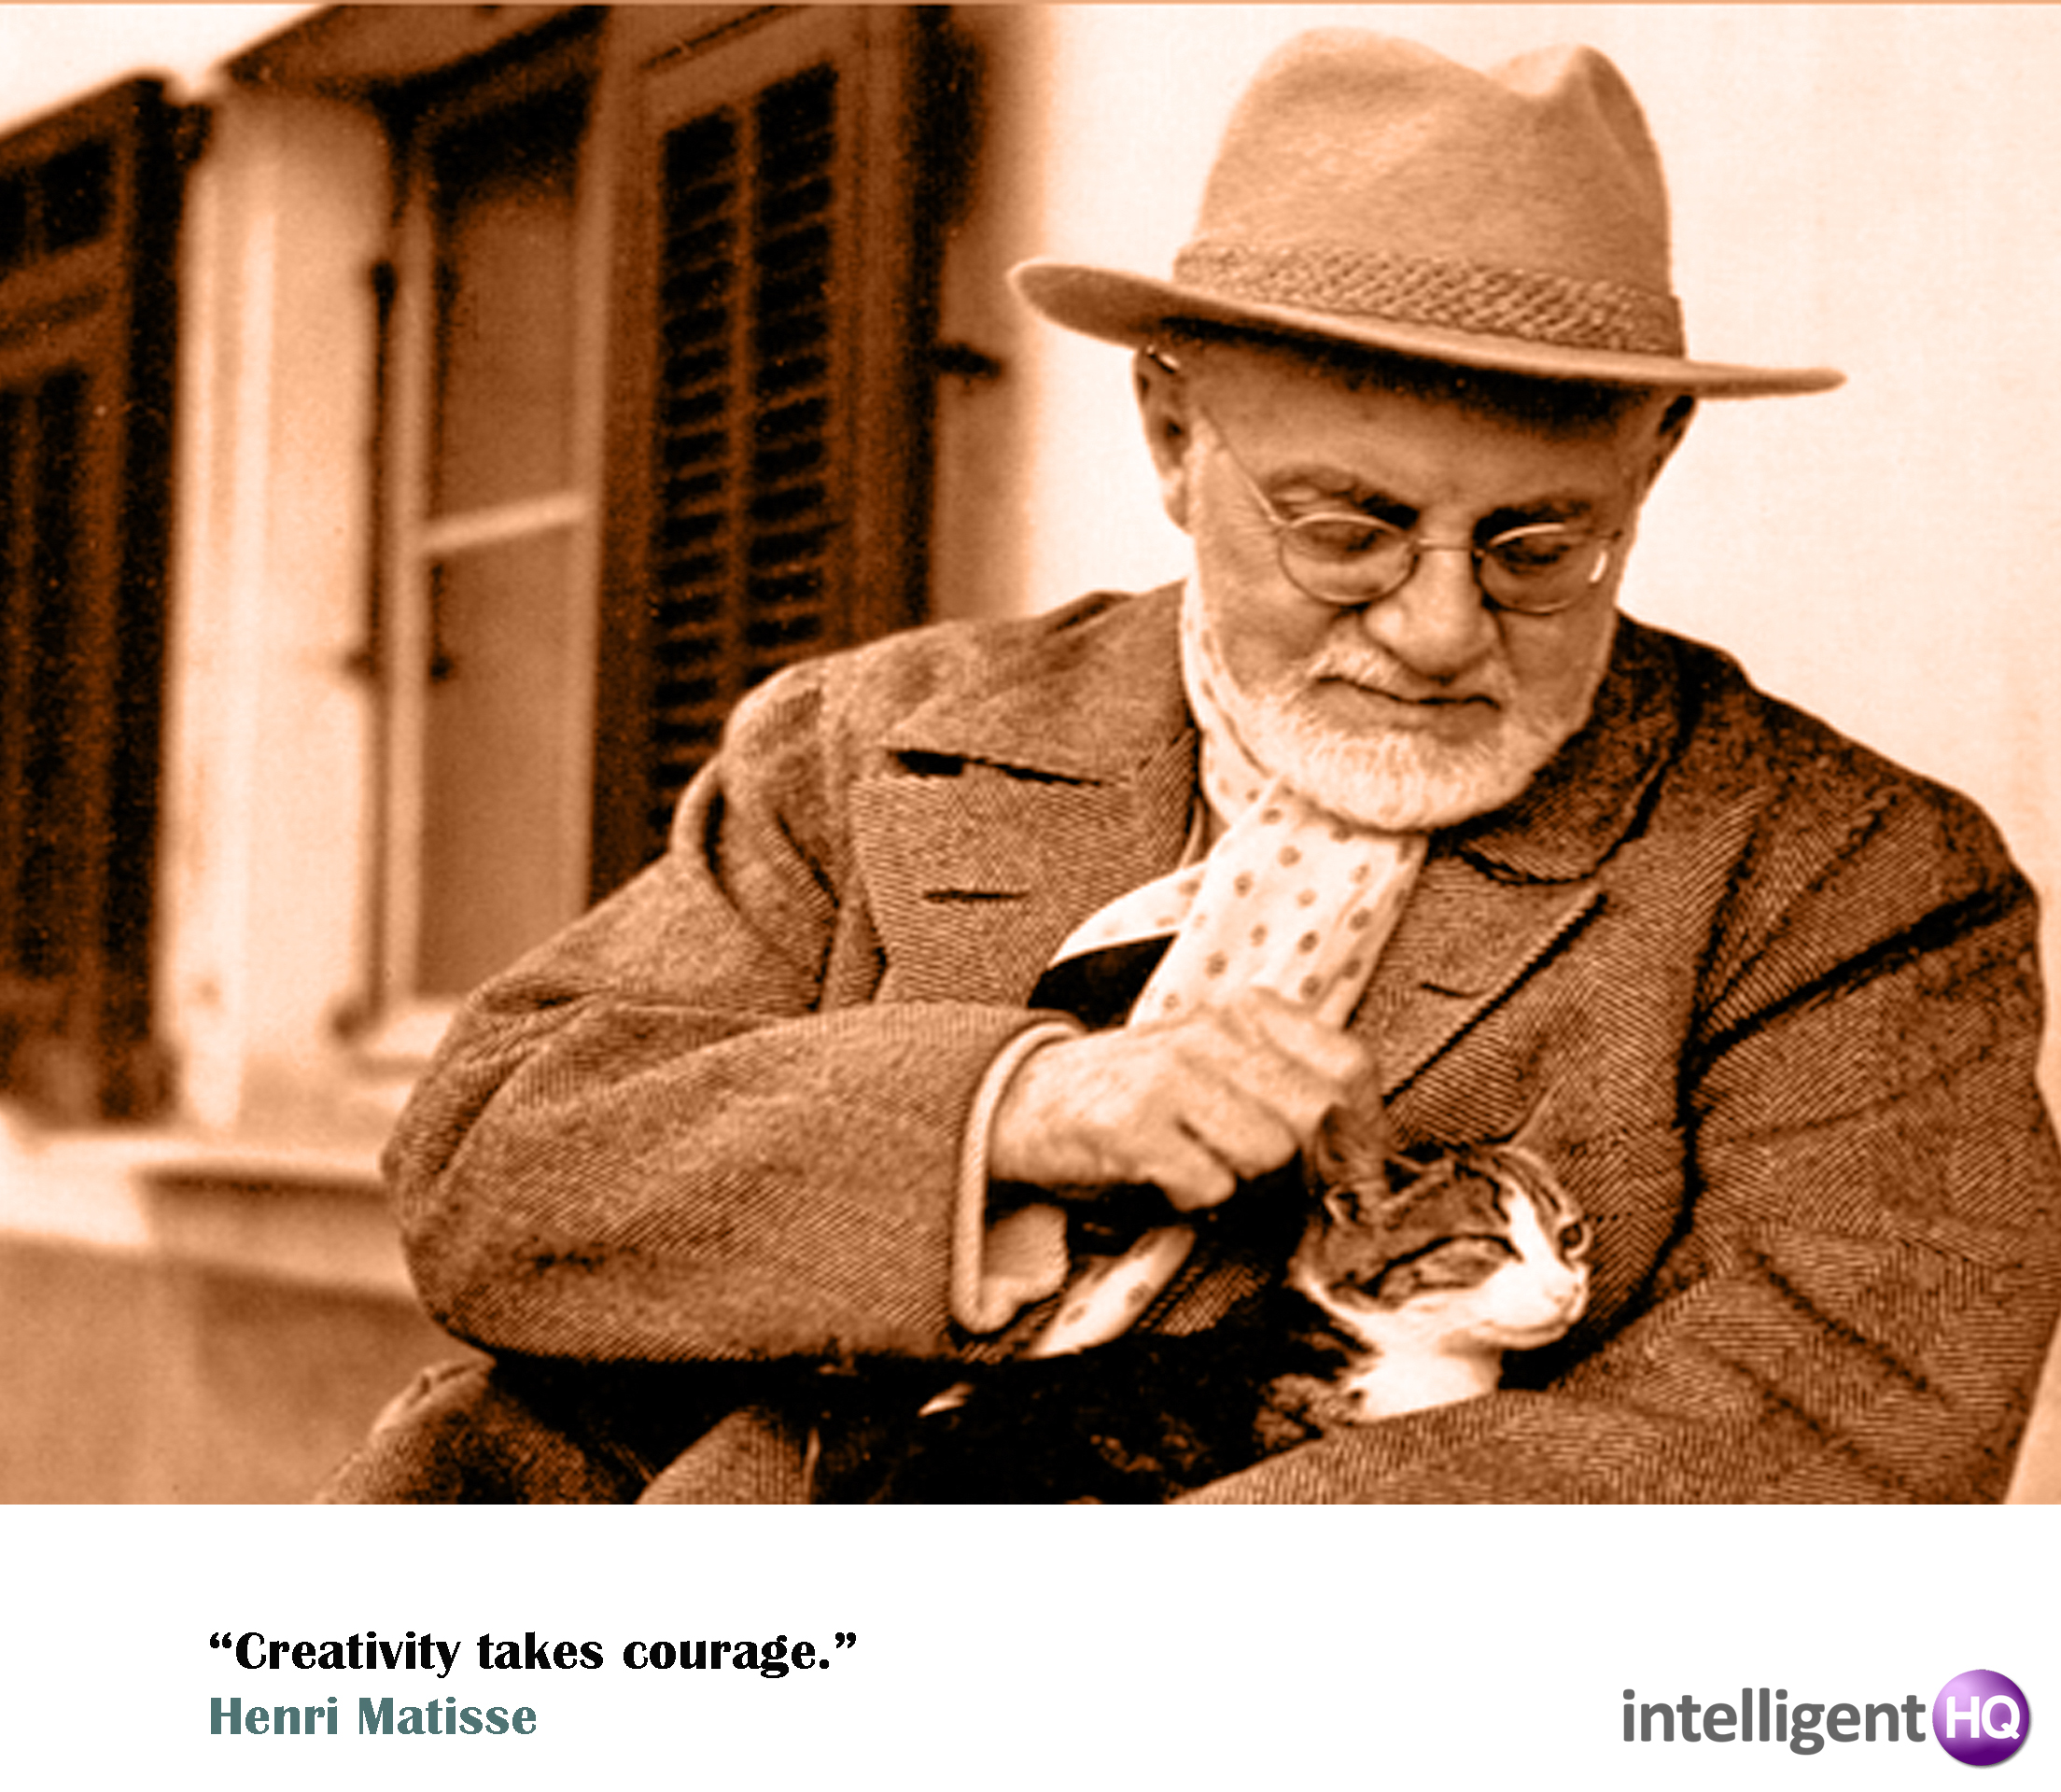 Quote by Henri Matisse Intelligenthq